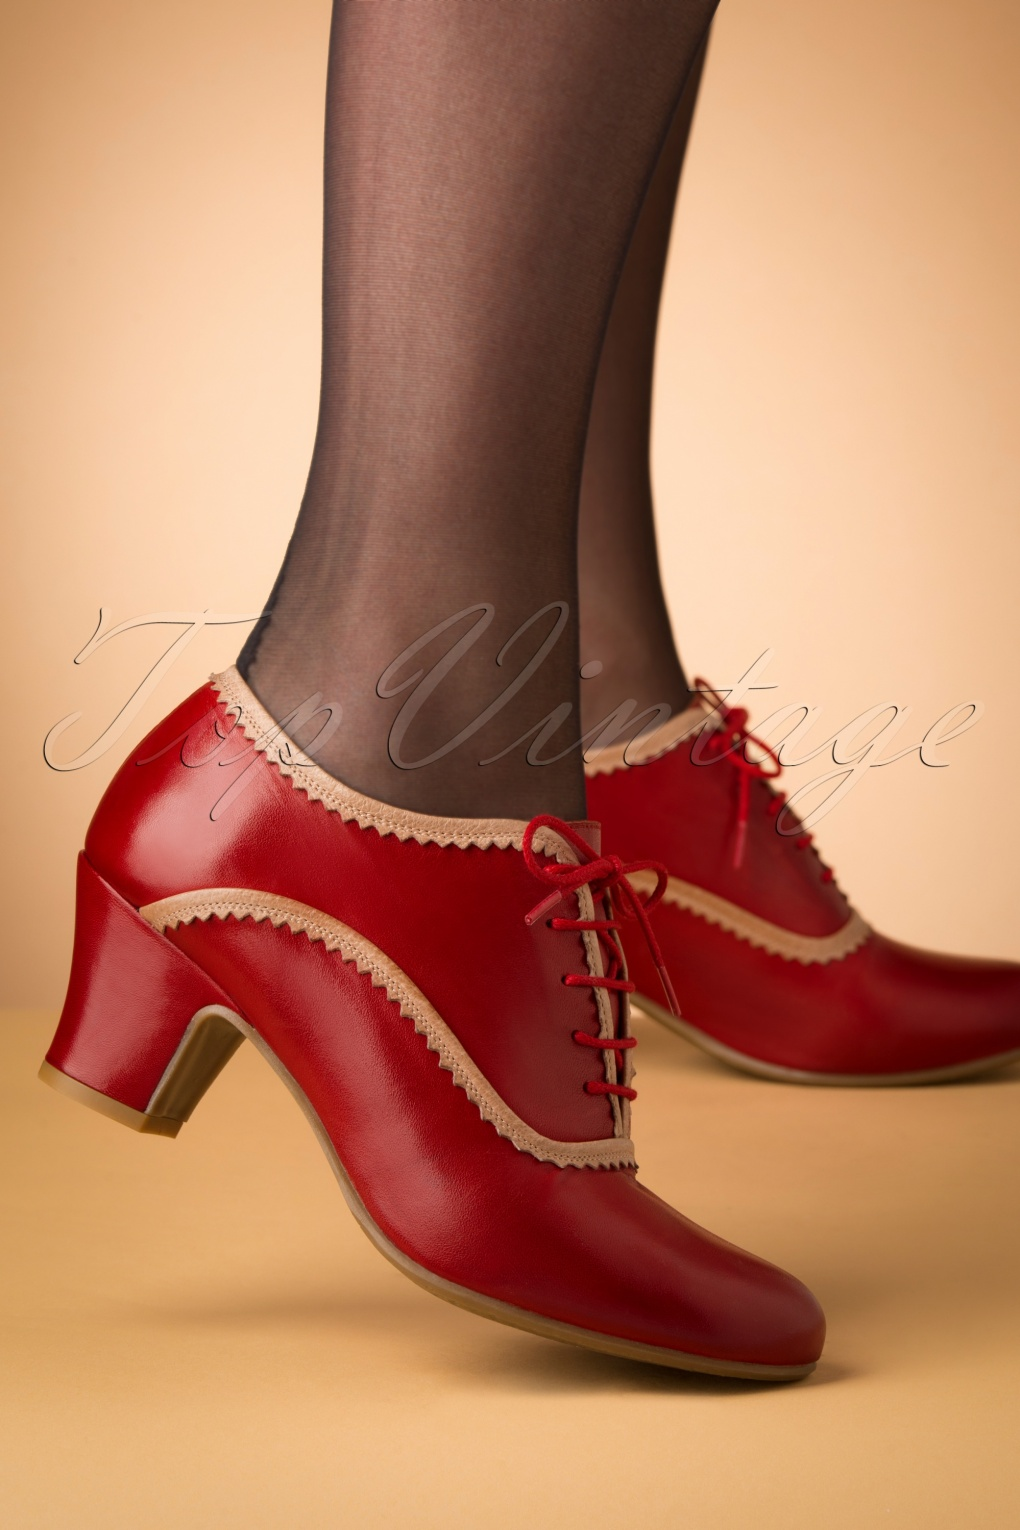 Vintage Style Shoes, Vintage Inspired Shoes 40s Farren Shoe Booties in Red £120.33 AT vintagedancer.com